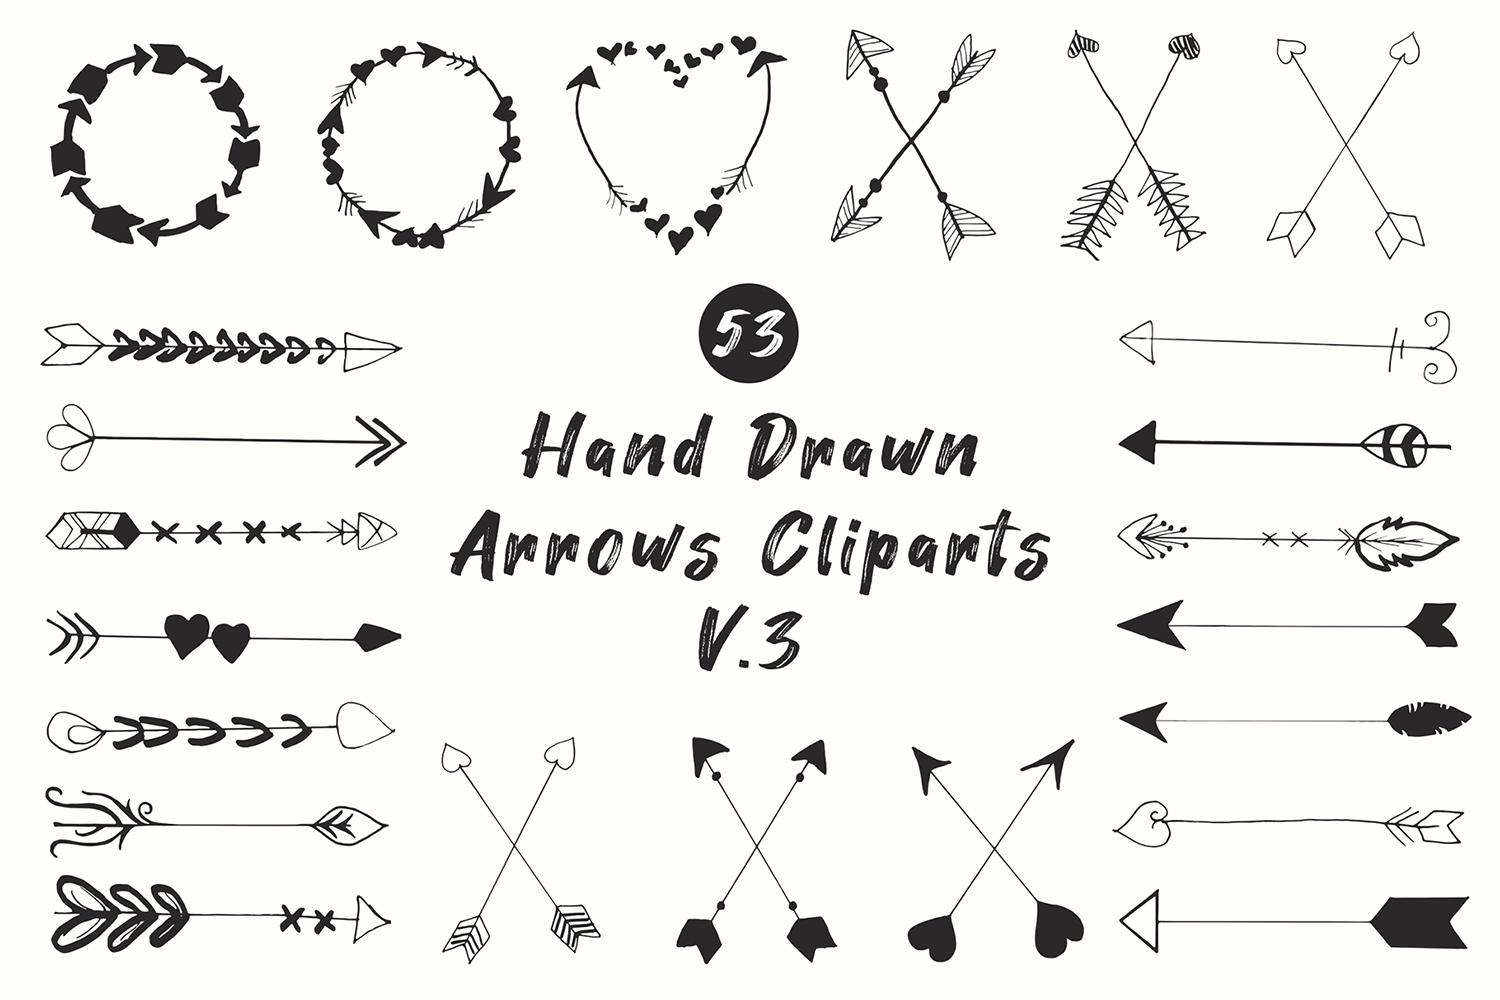 50 Handdrawn Arrows Clipart Ver 3 Graphic By Creative Tacos